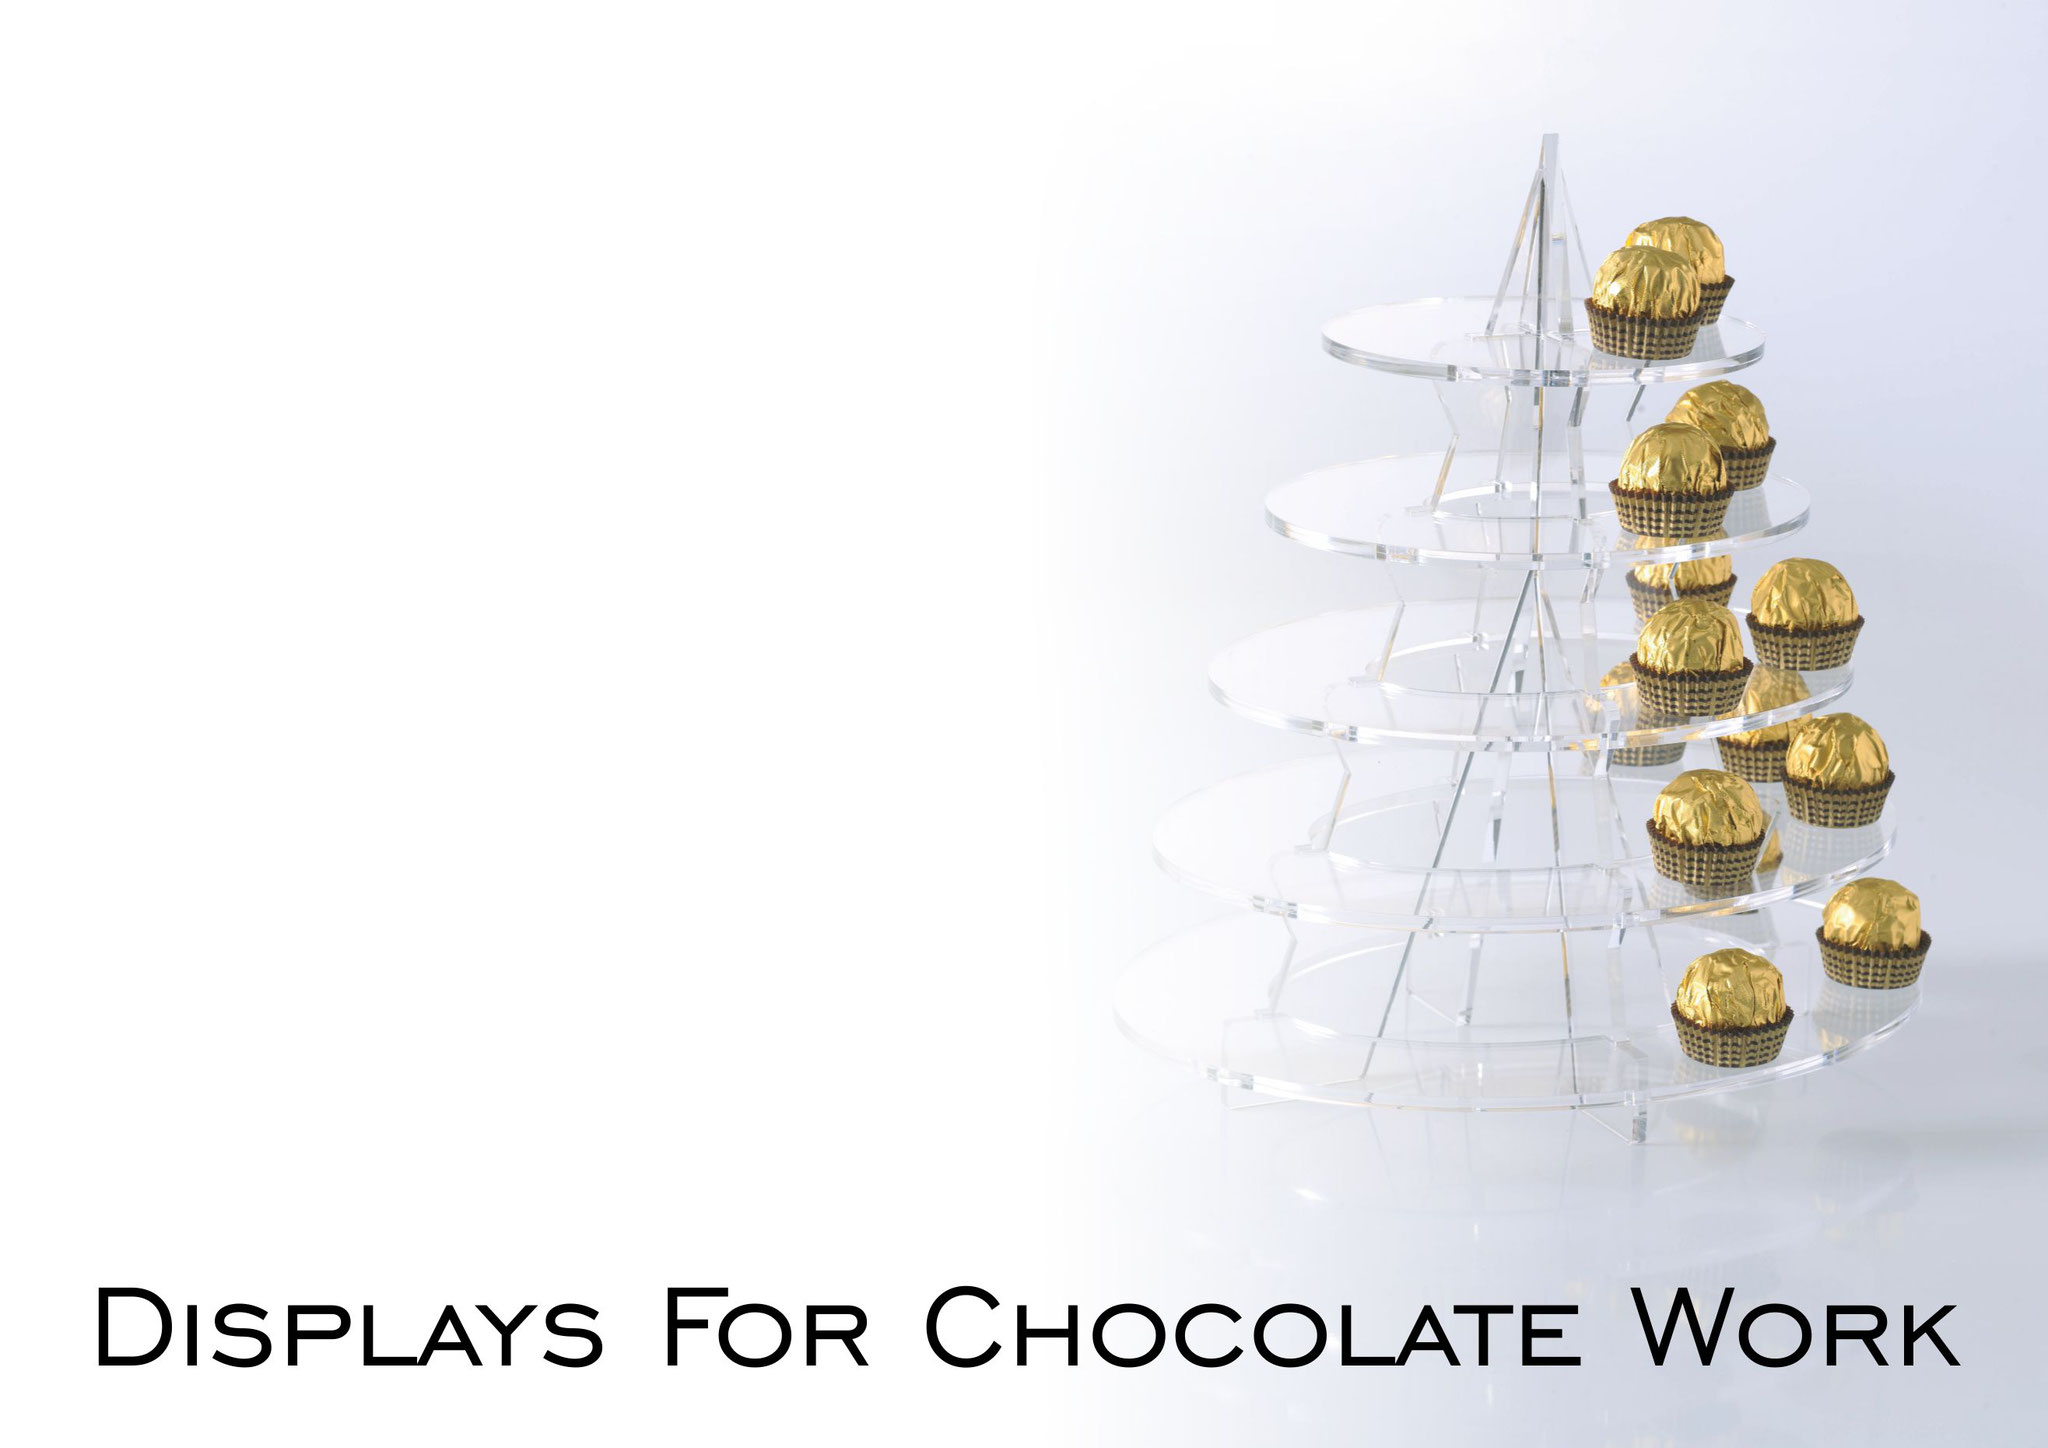 Displays for Chocolate Work